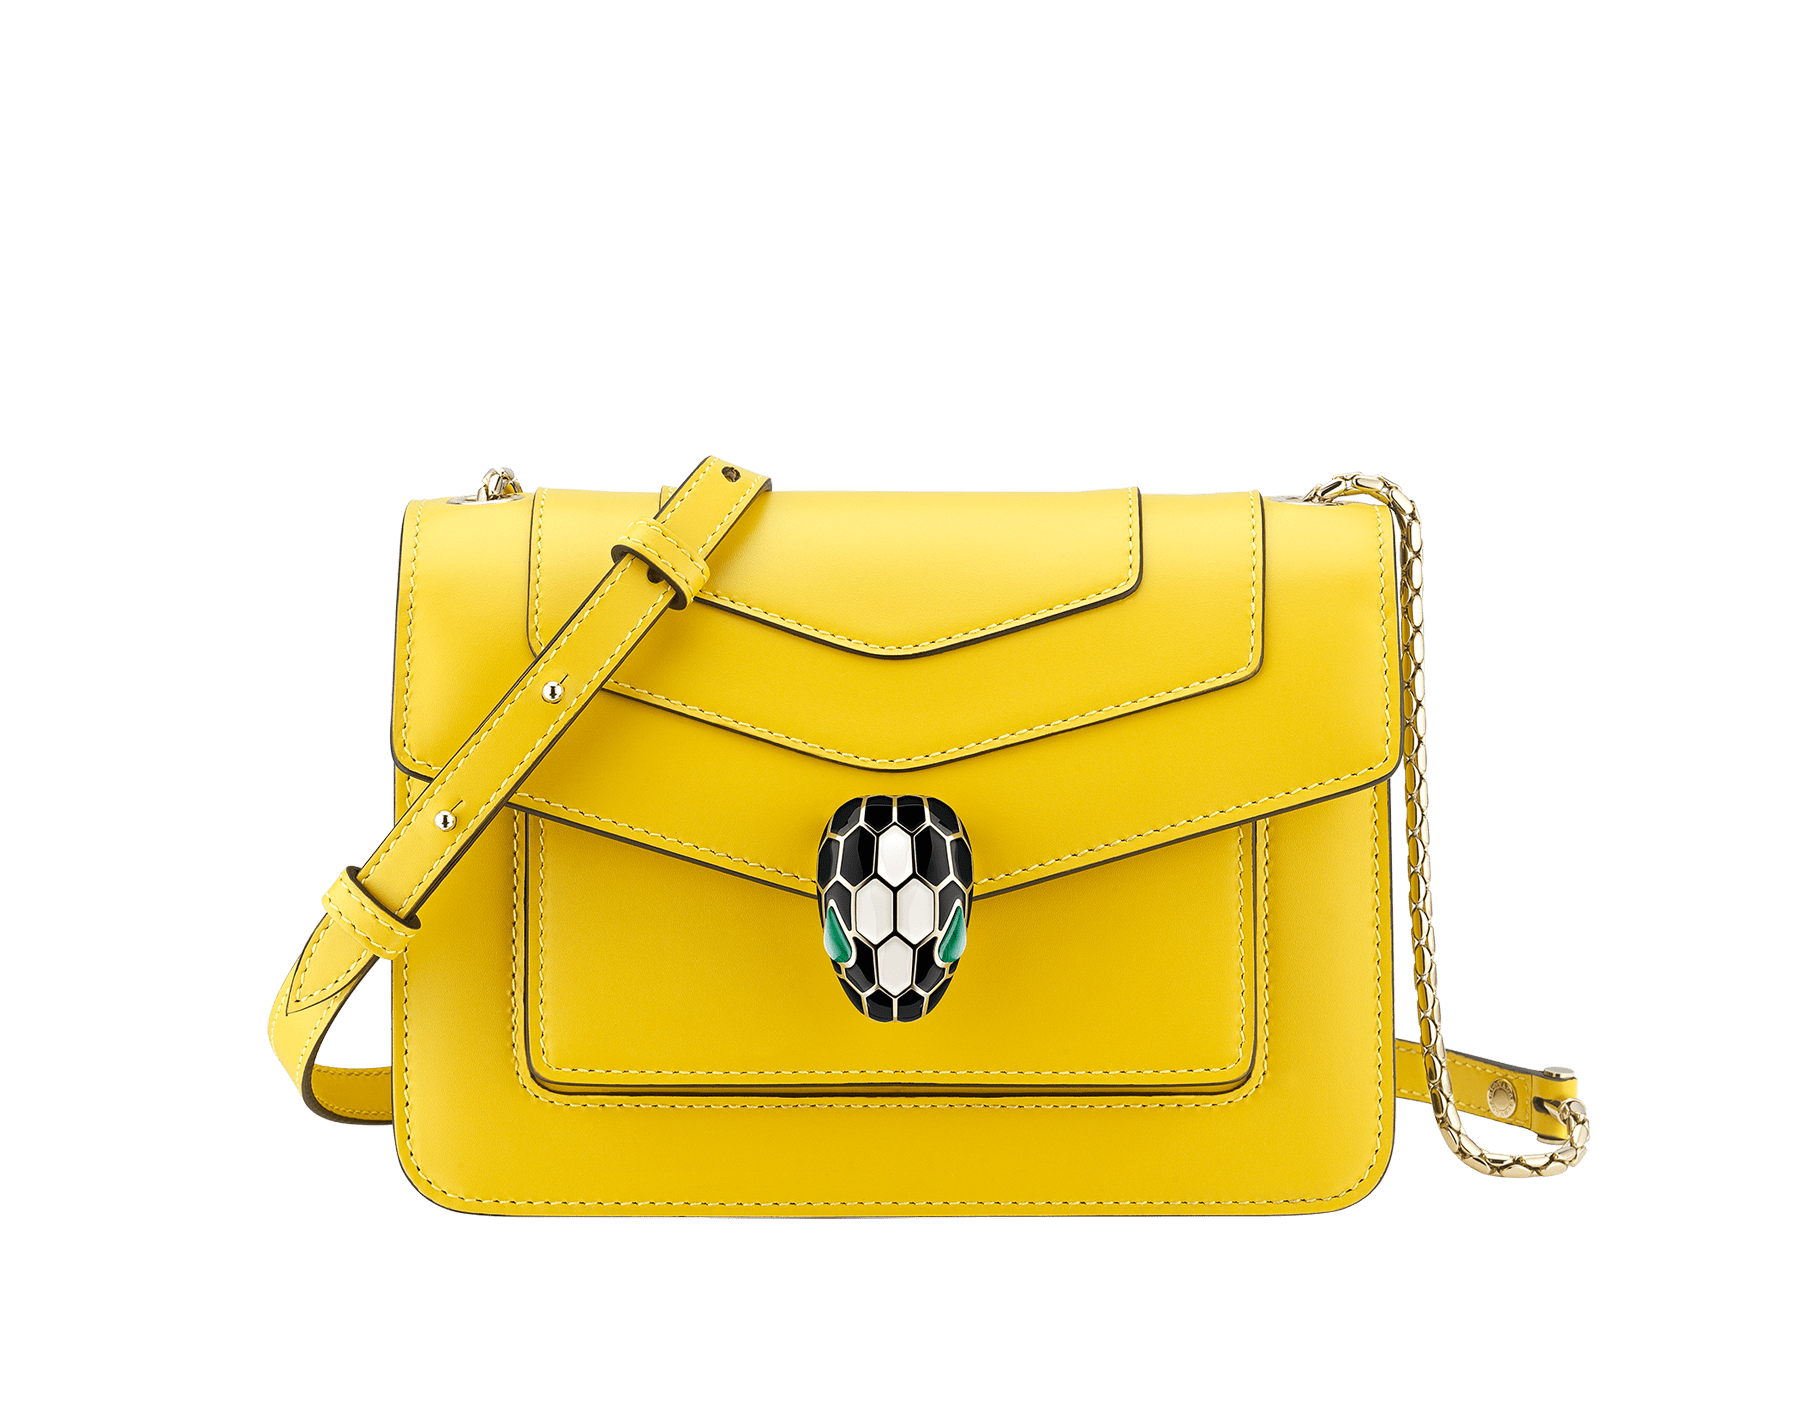 """Serpenti Forever"" crossbody bag in daisy topaz calf leather. Iconic snake head closure in light gold plated brass enriched with black and white enamel and green malachite eyes. 289672 image 1"